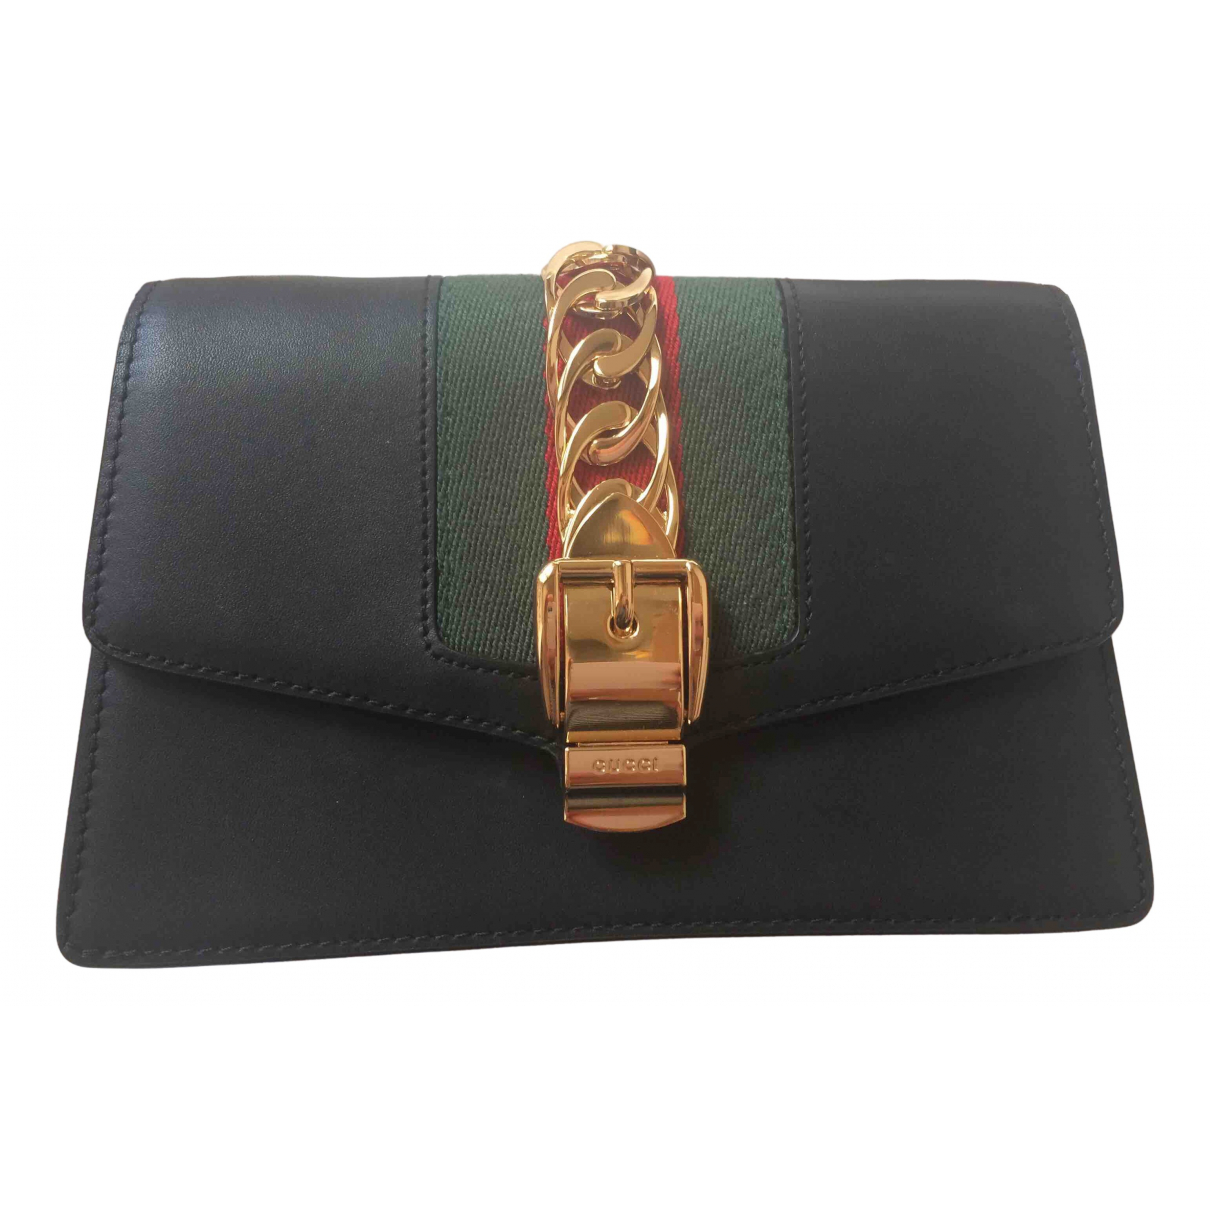 Gucci Sylvie Black Leather handbag for Women \N